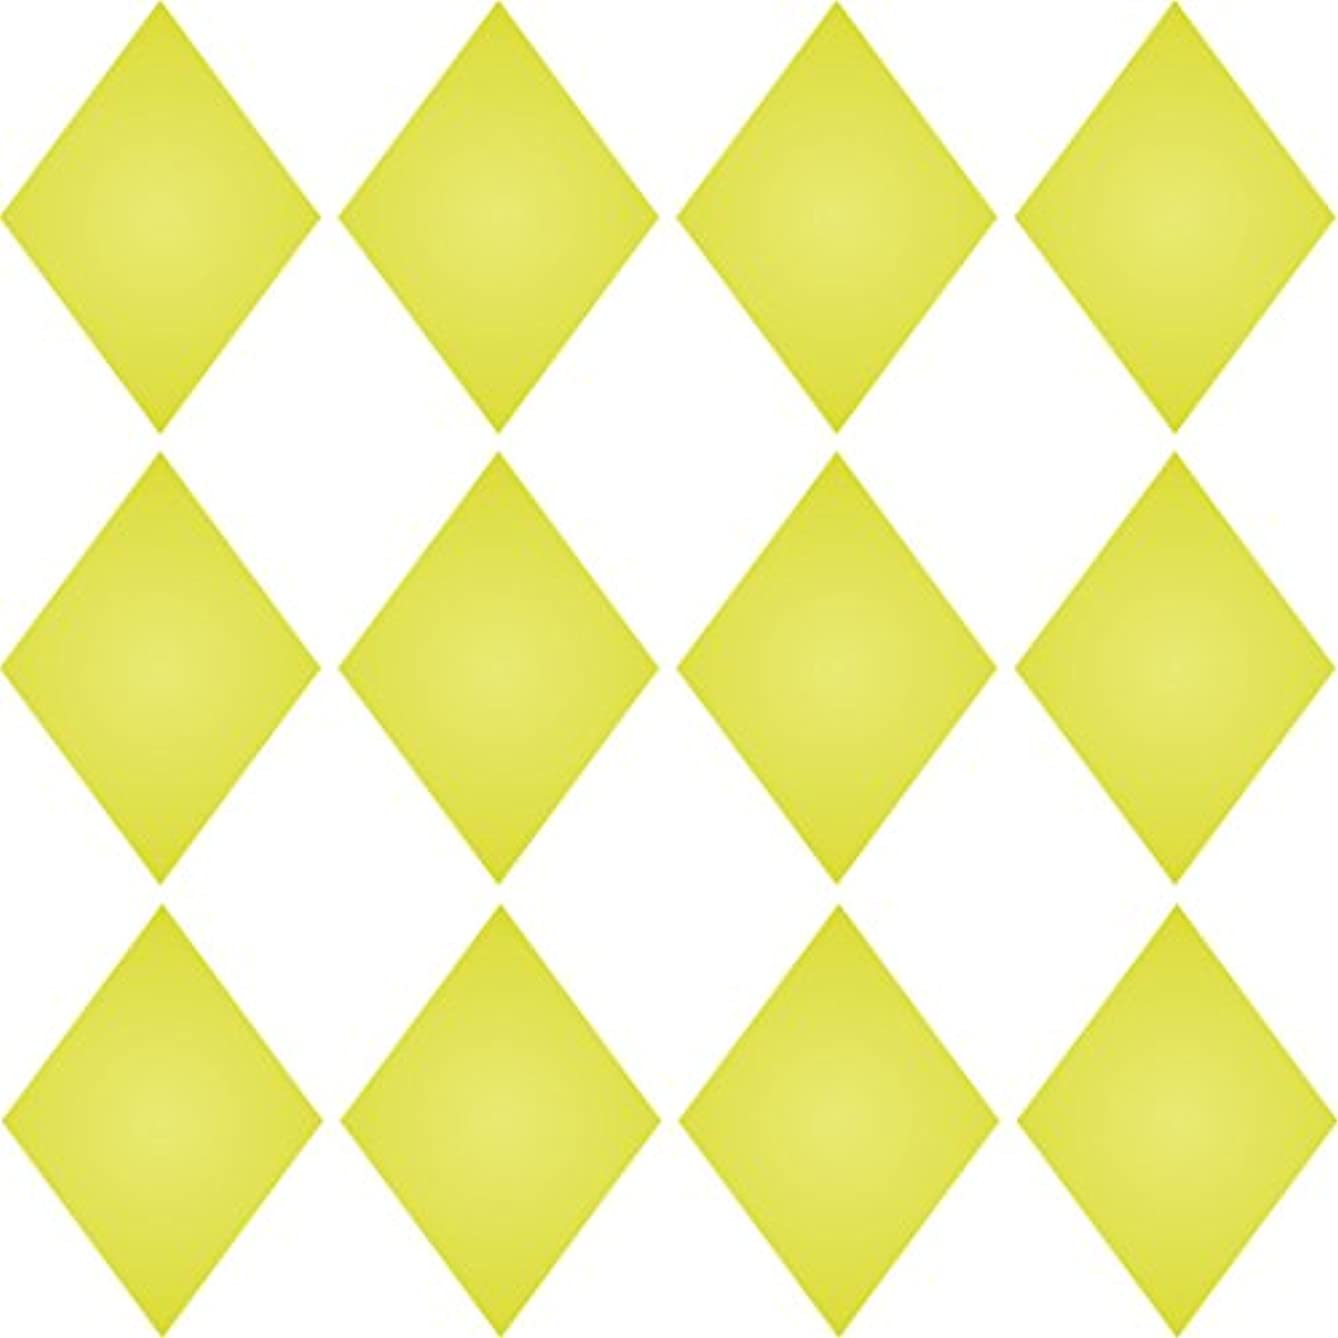 """SMALL DIAMONDS STENCIL (size 7""""w x 7""""h) Reusable Stencils for Painting - Best Quality Scrapbooking Wall Art Décor Ideas - Use on Walls, Floors, Fabrics, Glass, Wood, Posters, and More…"""